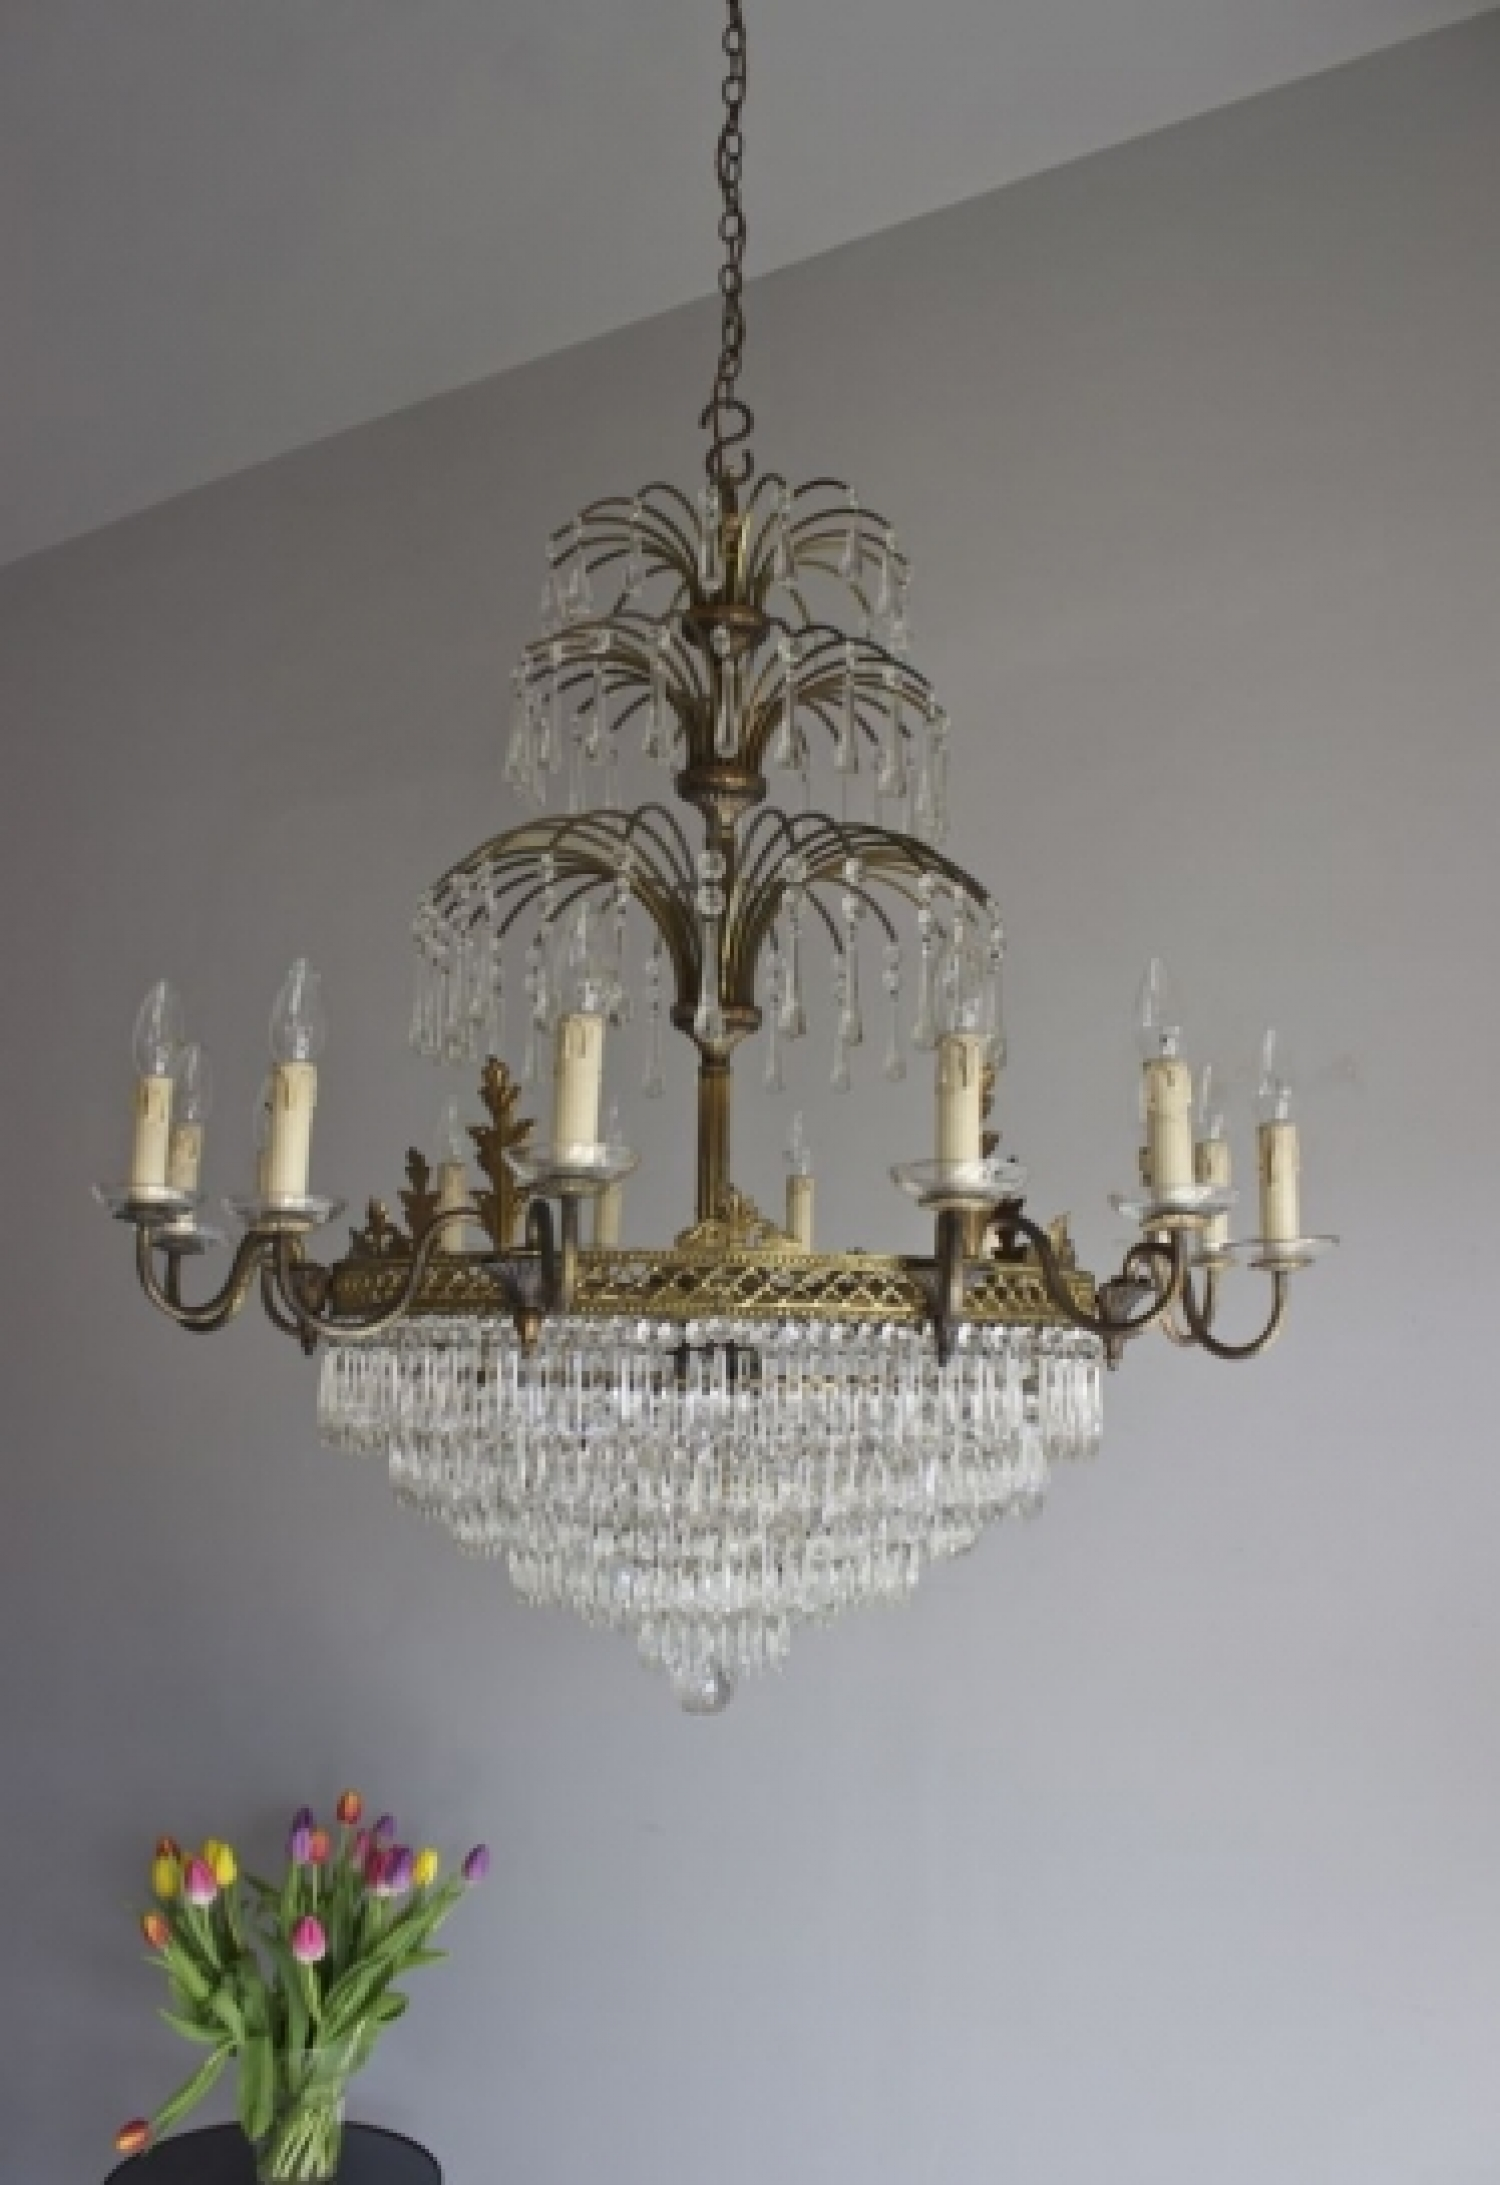 Large Antique Chandeliers - part of our Antique Lighting Range - image 5 - Large Antique Chandeliers - Part Of Our Antique Lighting Range